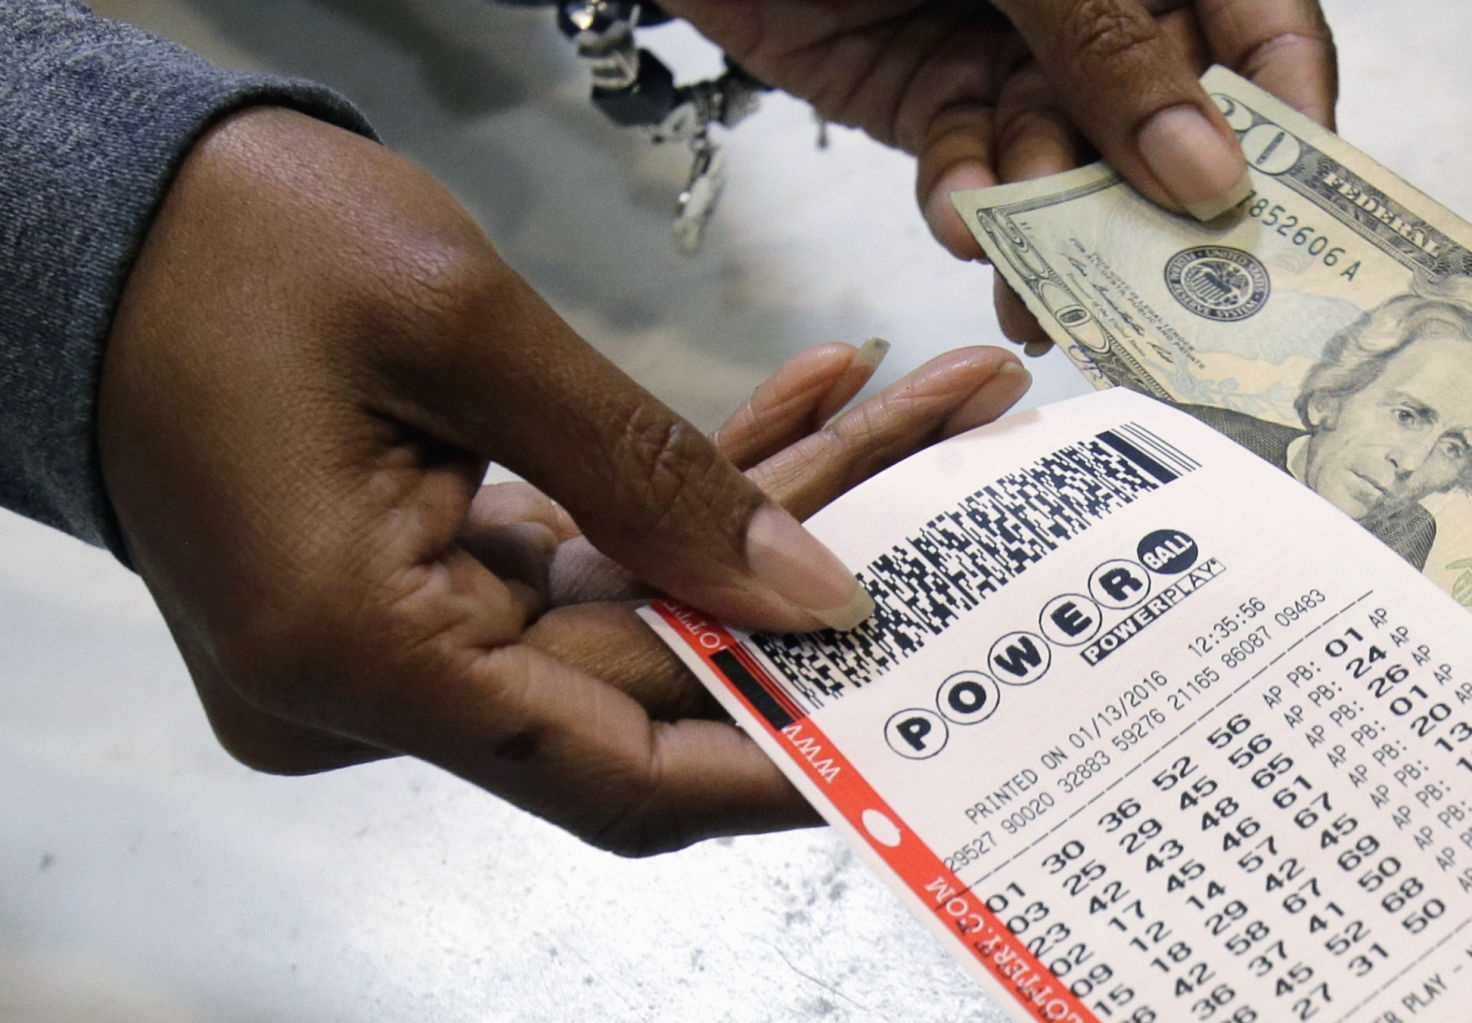 Powerball jackpot winning numbers 54, 41, 9, 3, 21 and Powerball 25